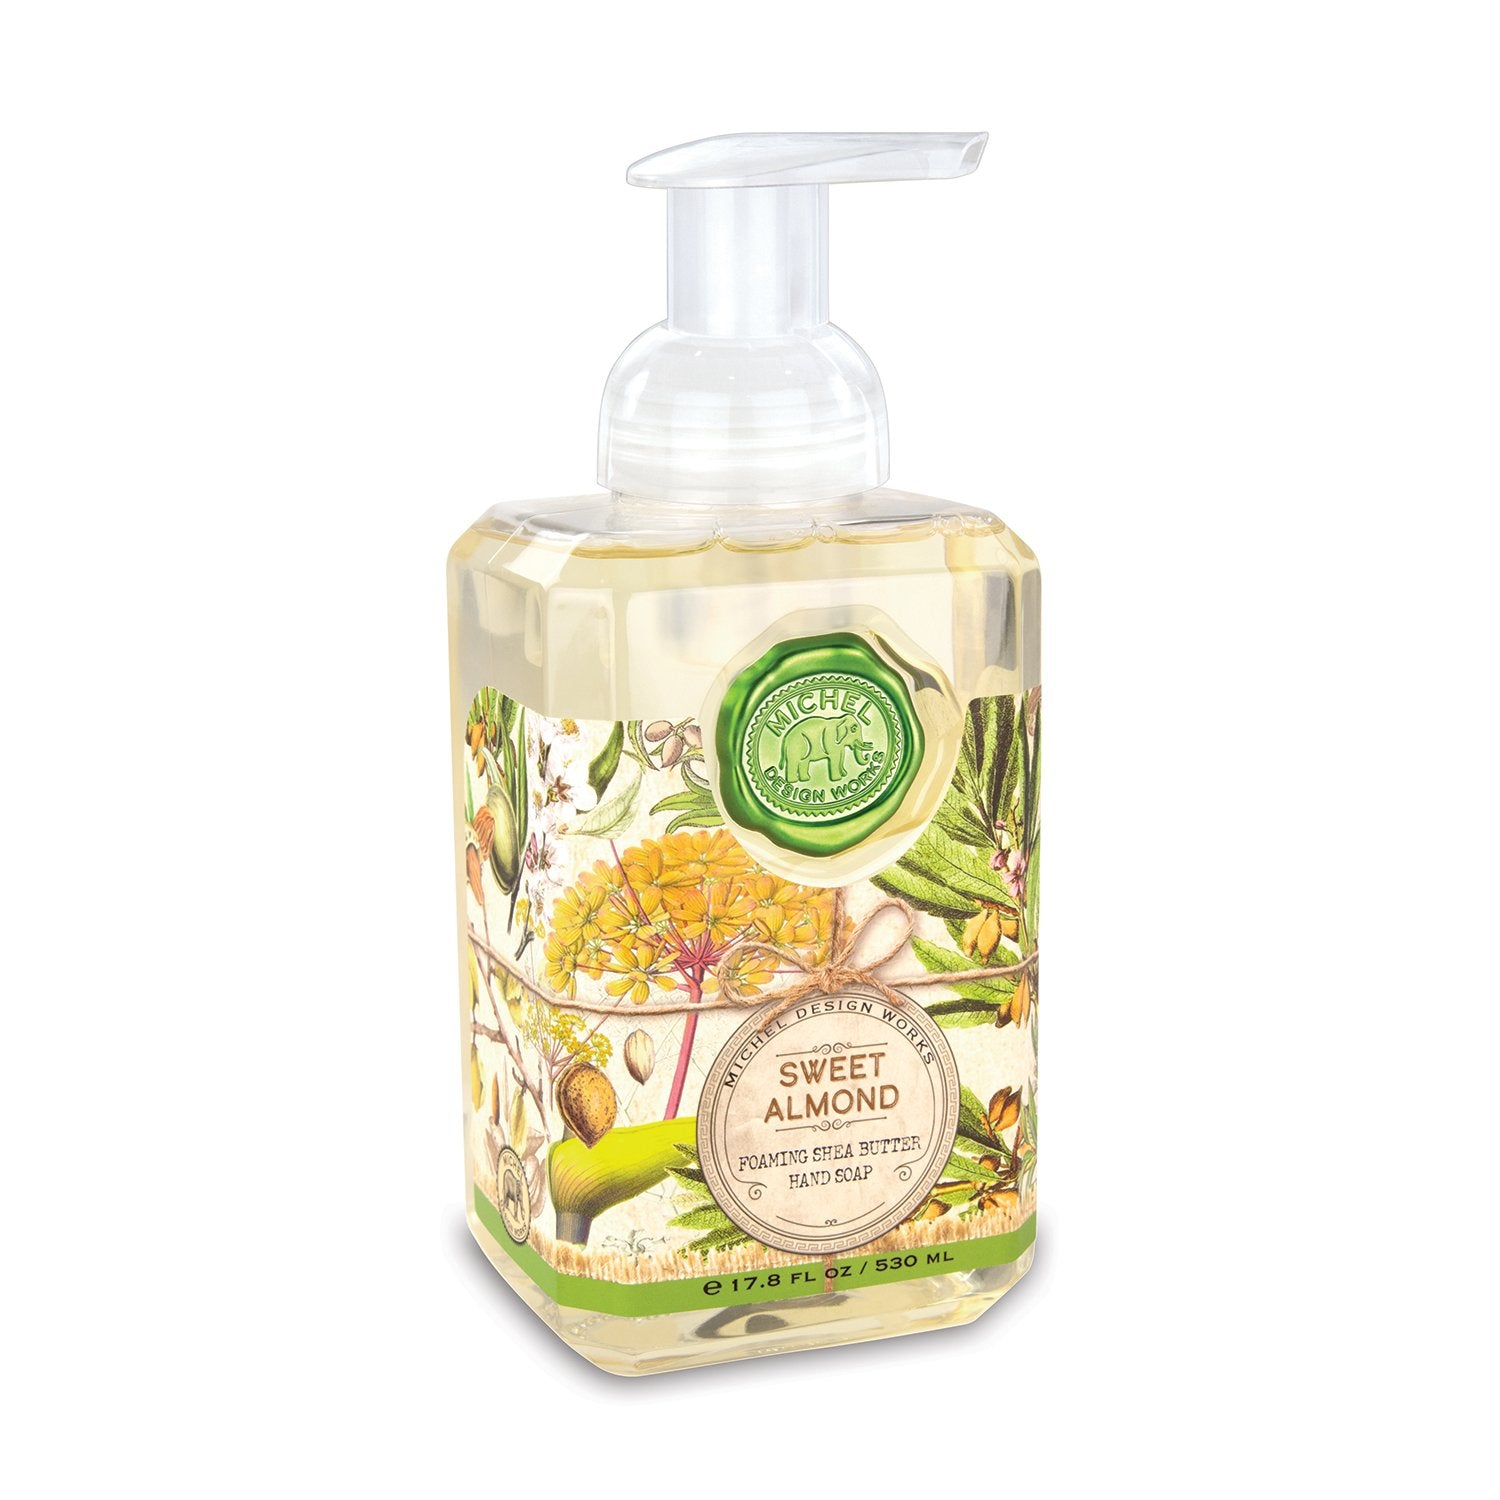 Sweet Almond Foaming Hand Soap